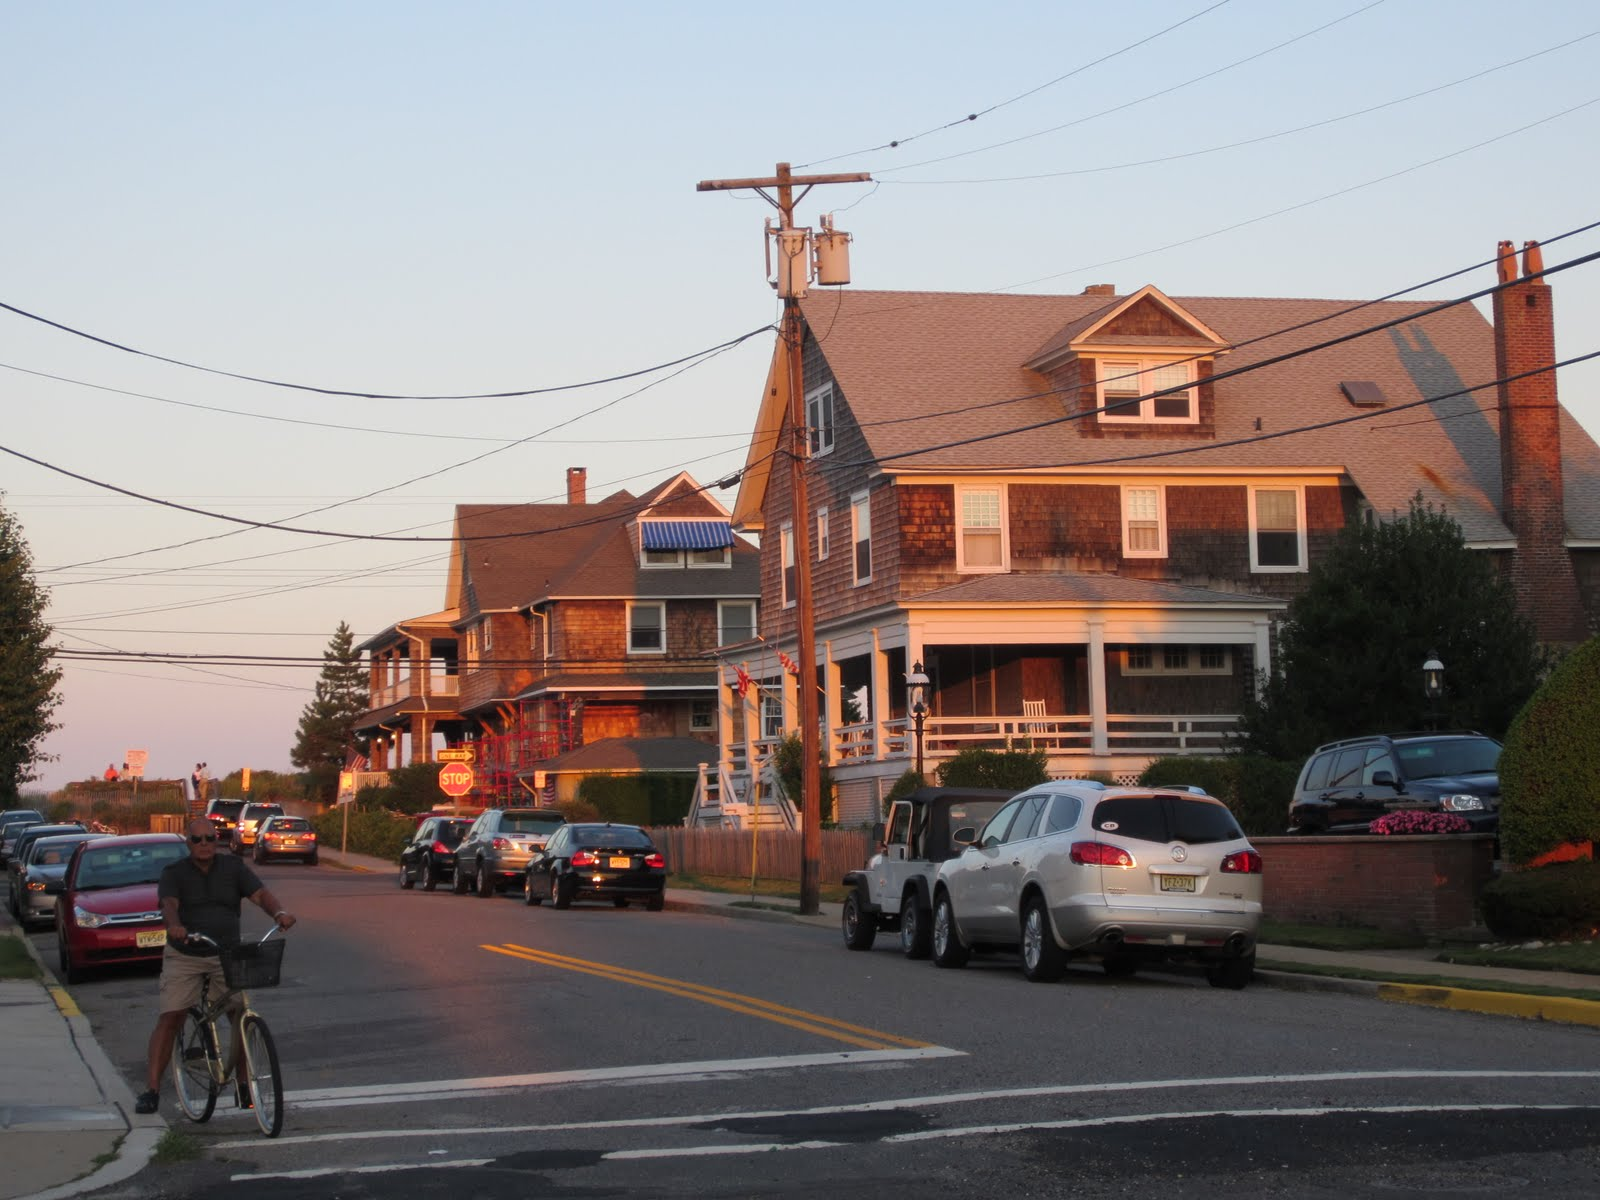 Bayhead, NJ - A charming beach town!